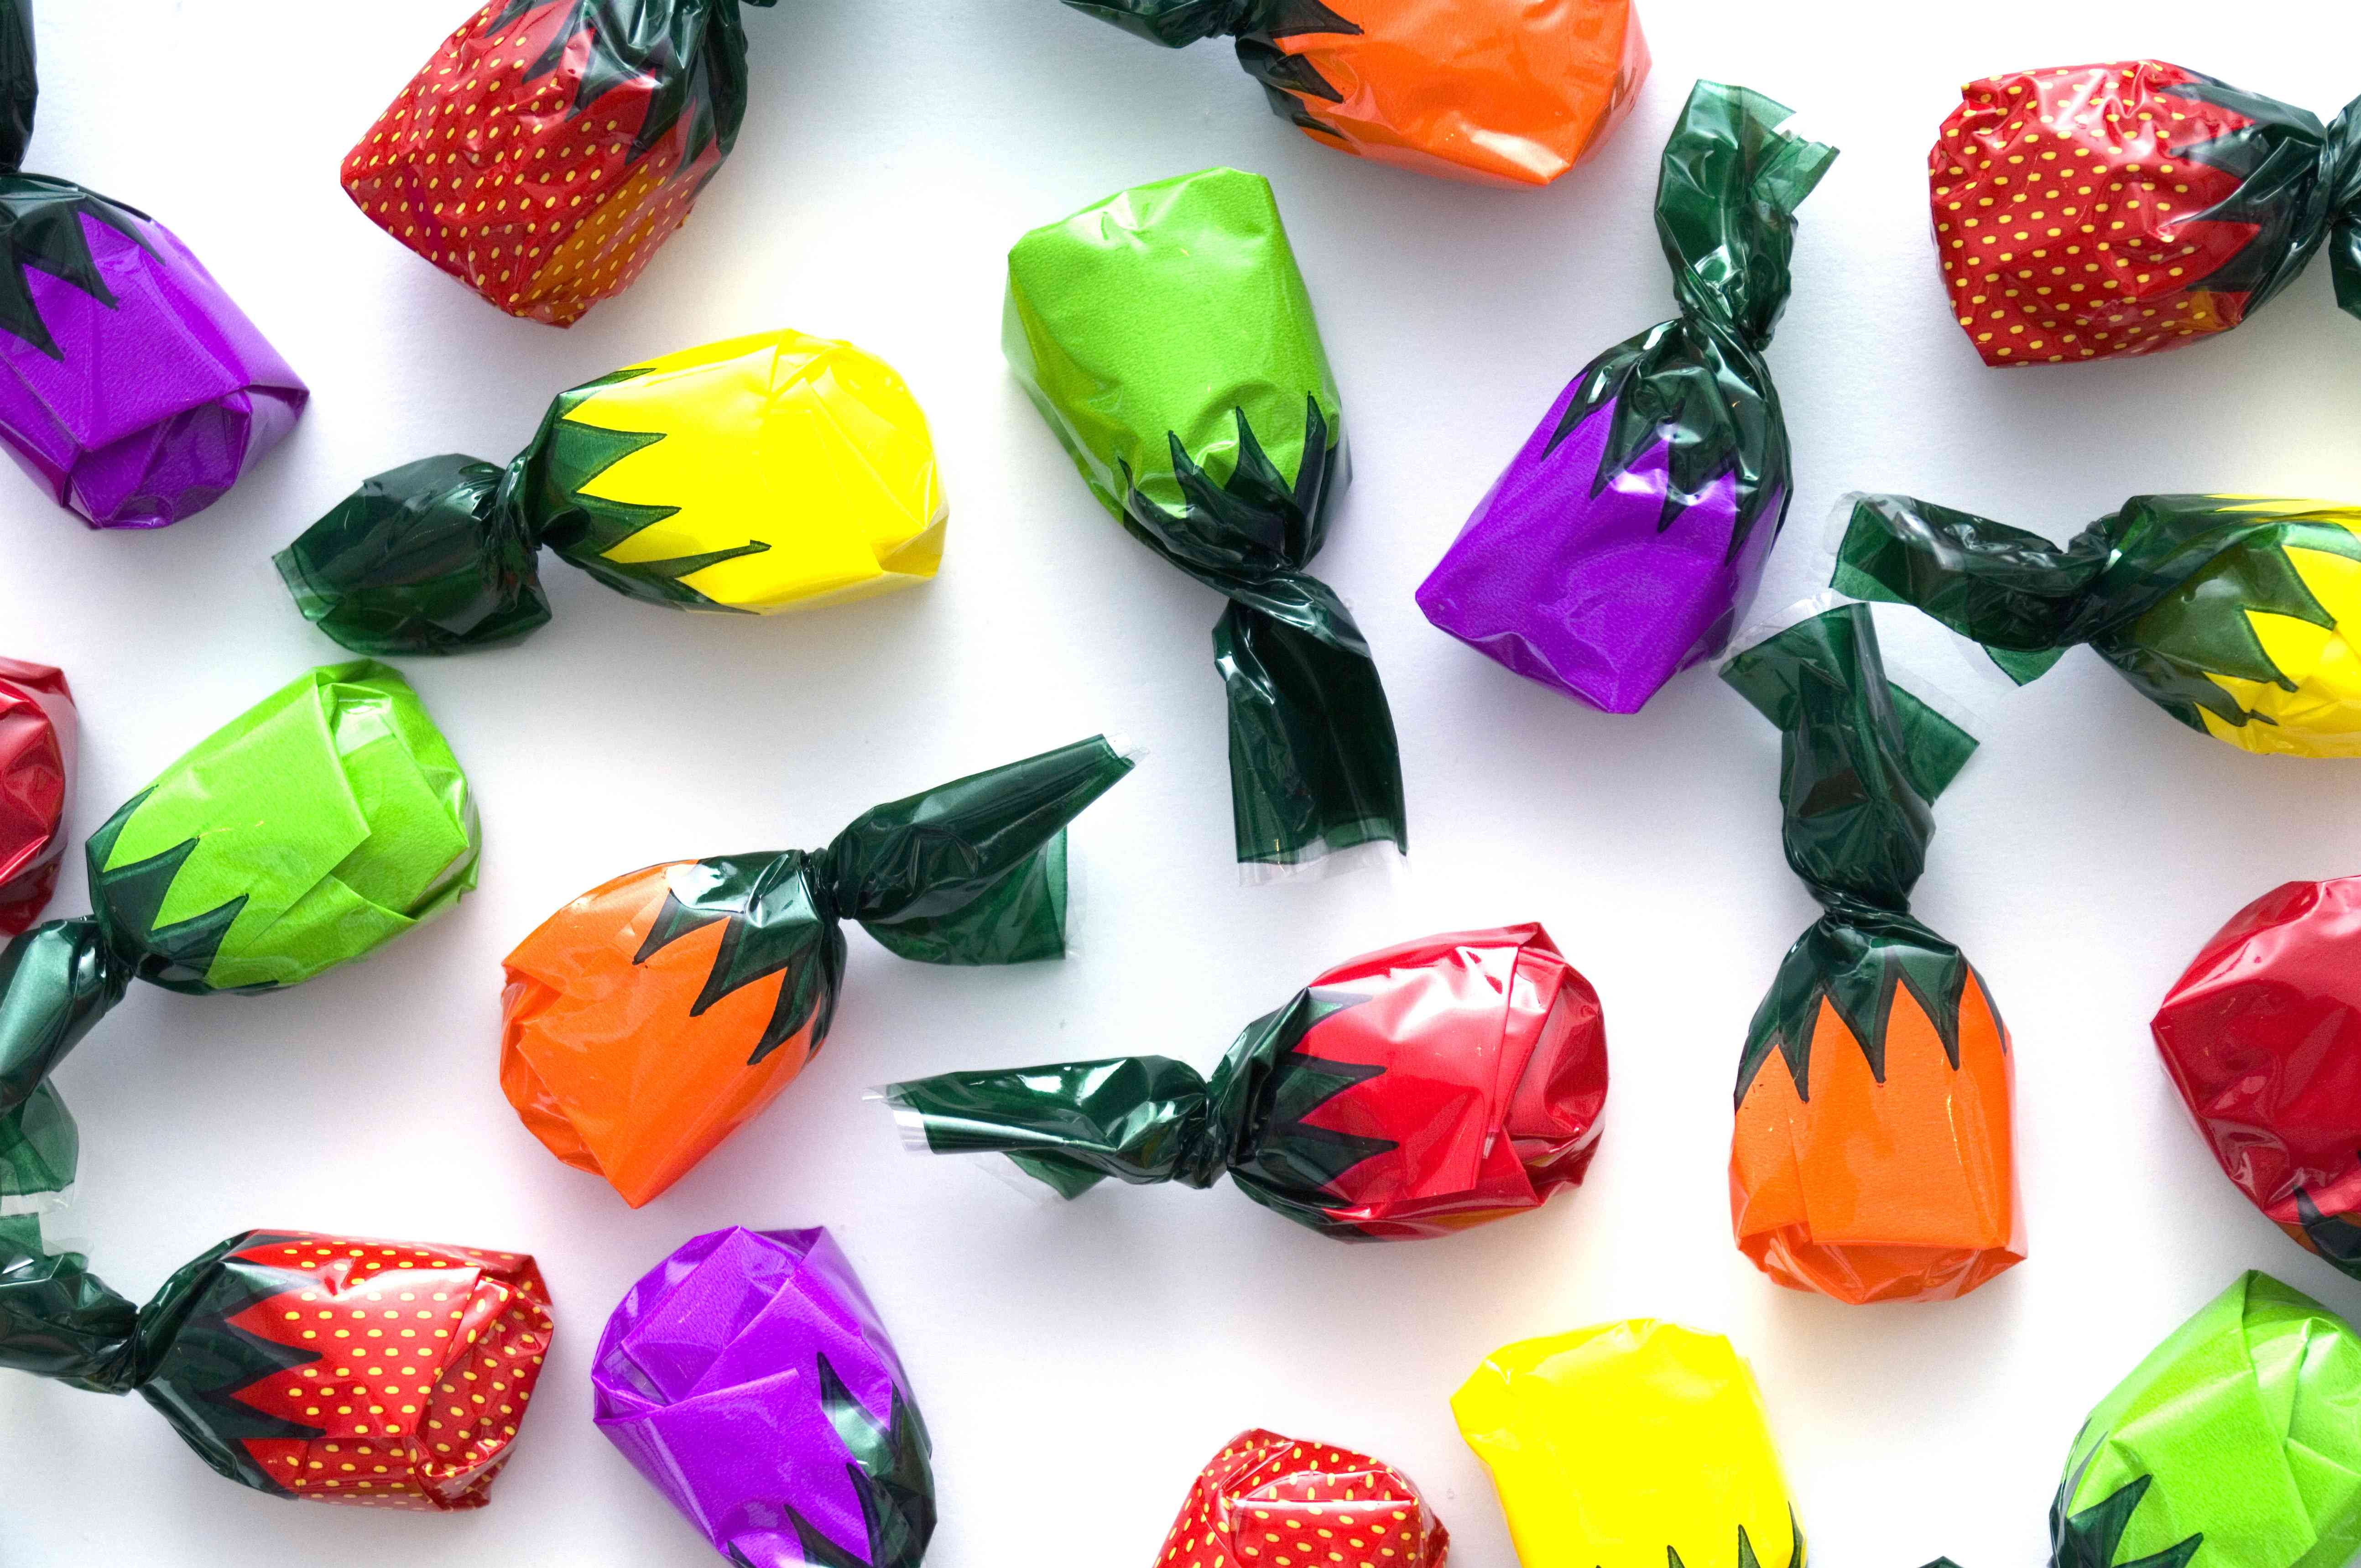 Multi-colored fruit candy